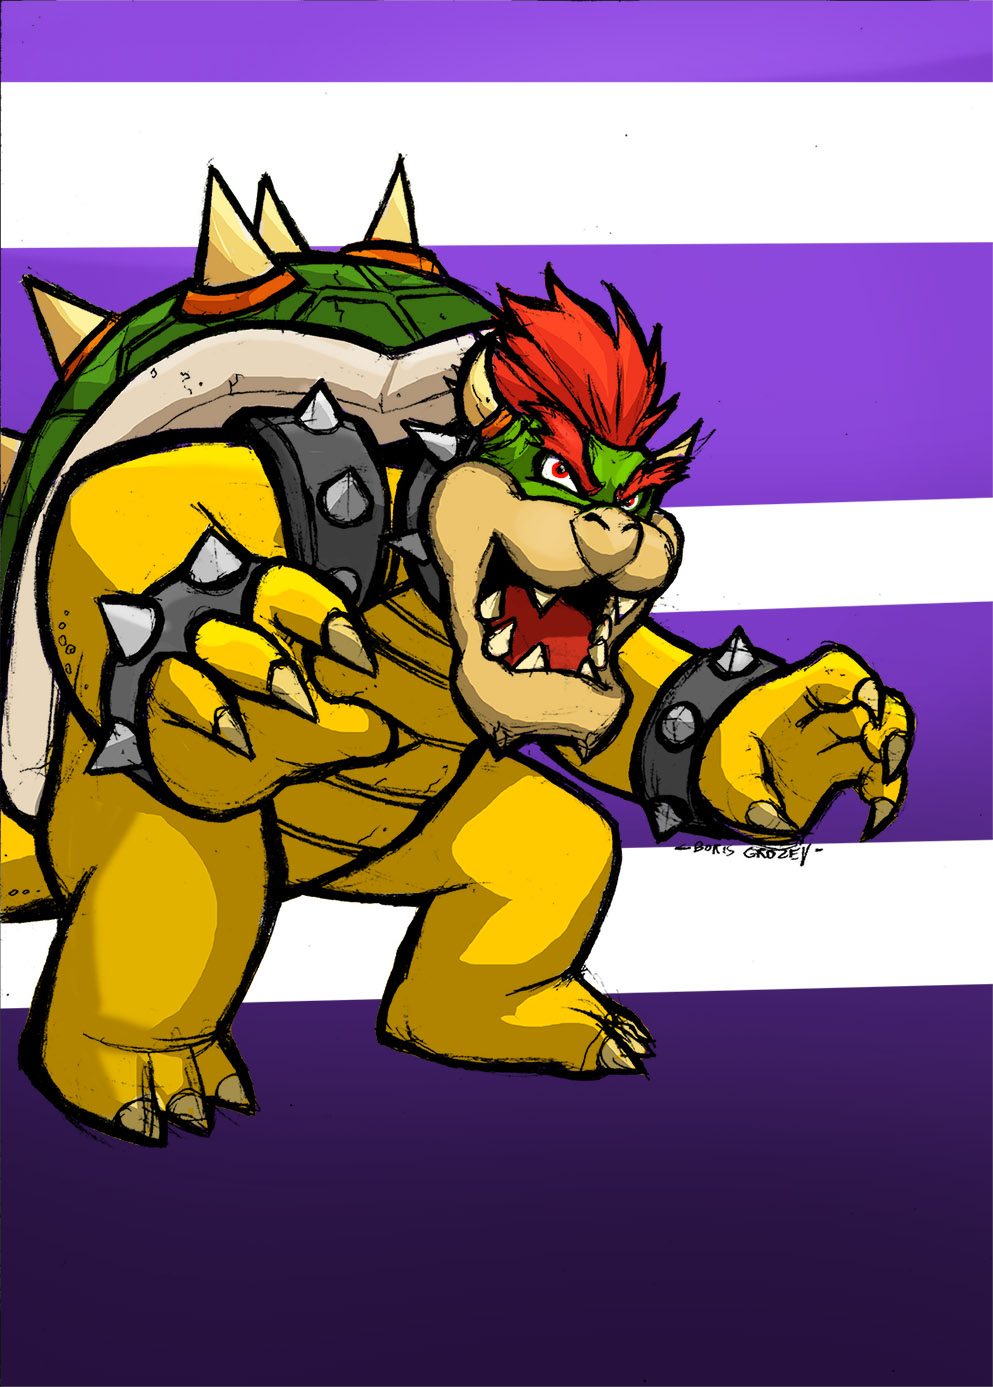 KING OF KOOPAS